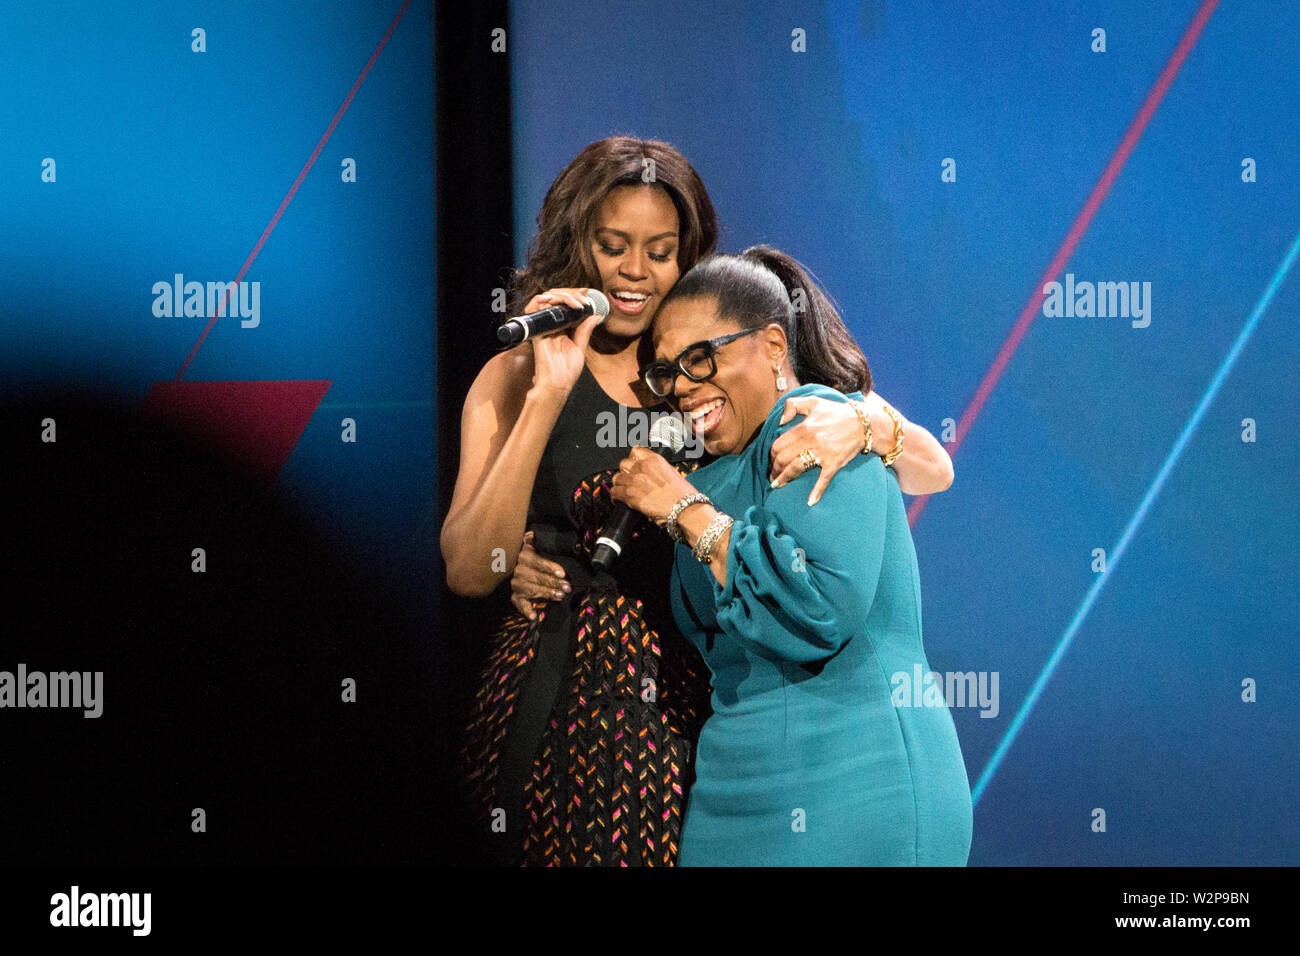 "First Lady Michelle Obama and Oprah Winfrey at the ""United States of Women"" conference at the Walther Washington Convention Center in Washington D.C. Stock Photo"